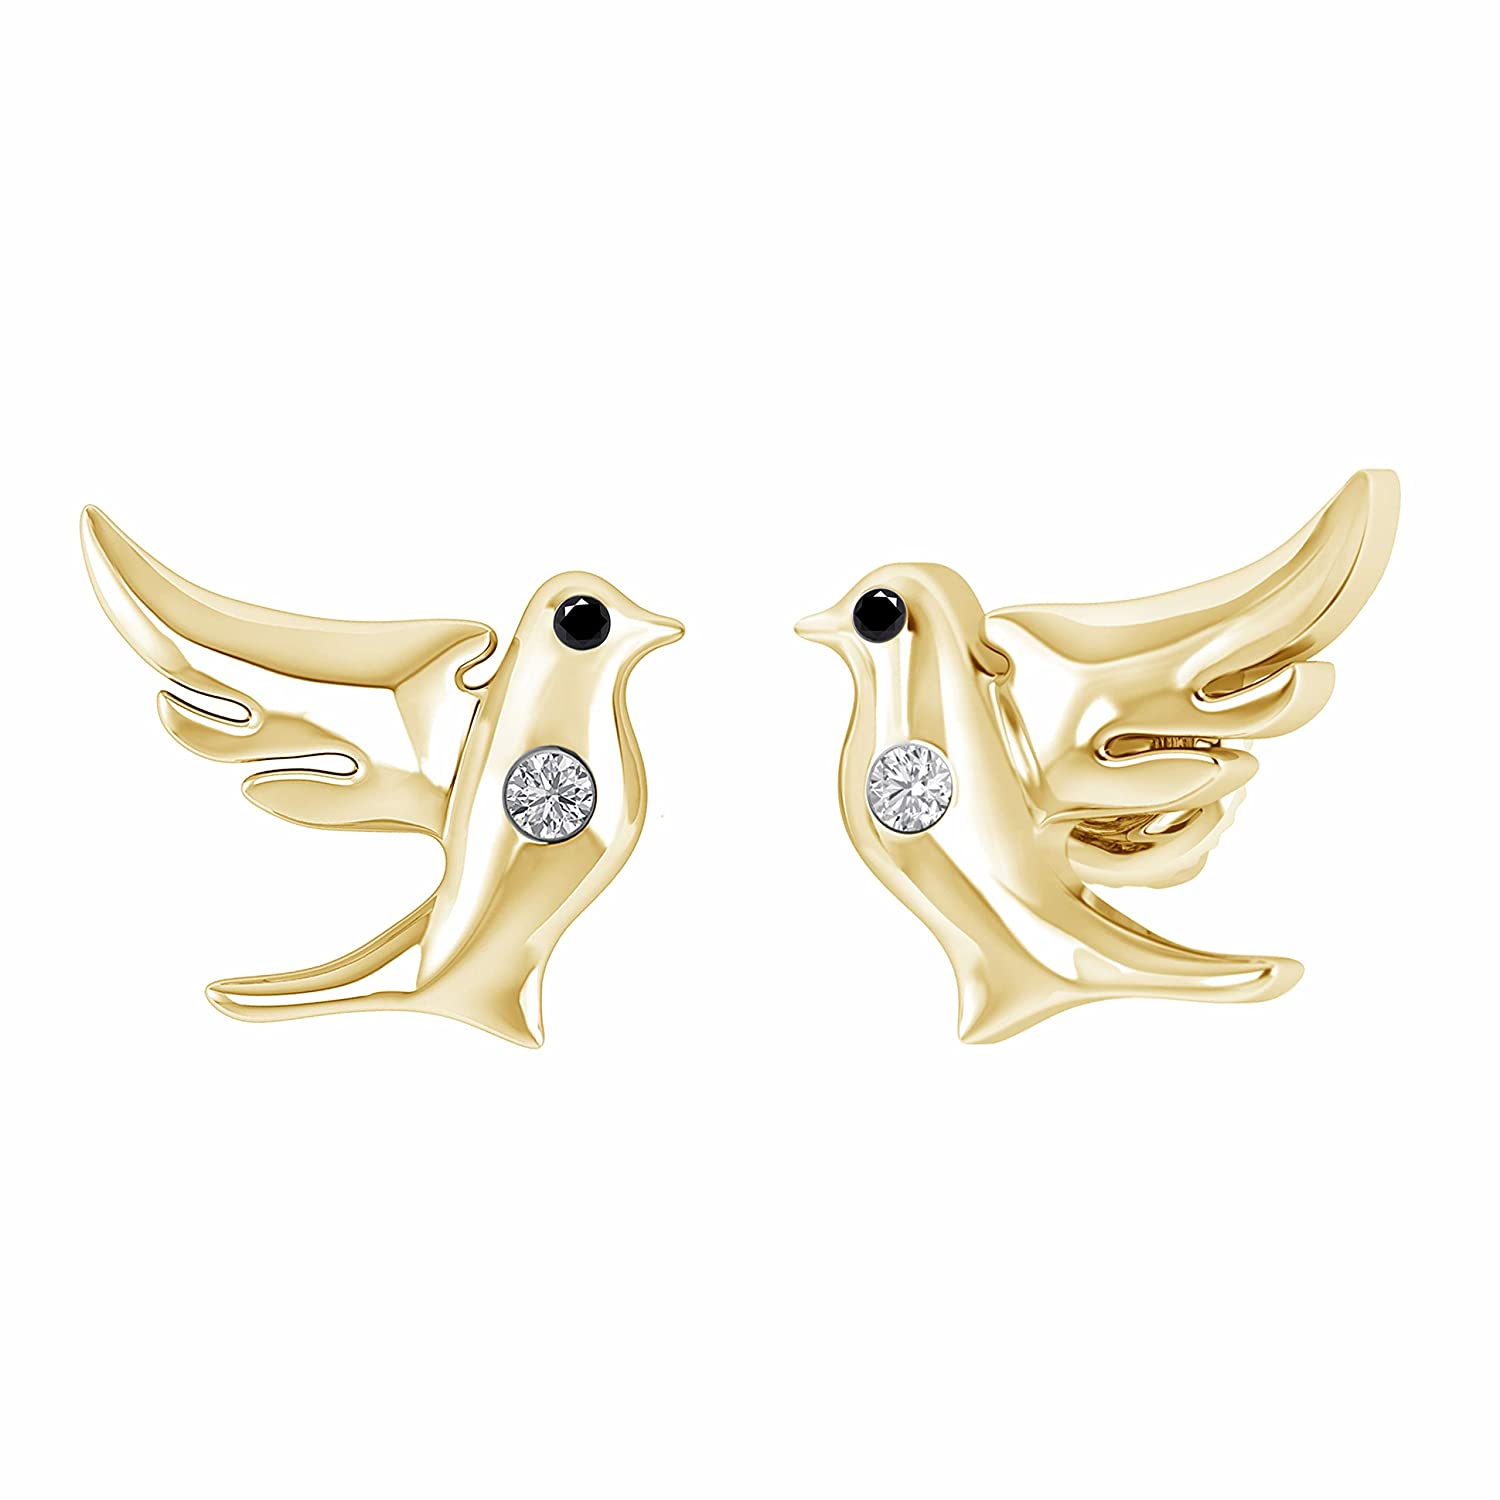 0.05 Ct Black /& White Diamond Flying Dove Stud Earrings in 14K Yellow Gold Fn 925 Sterling Silver